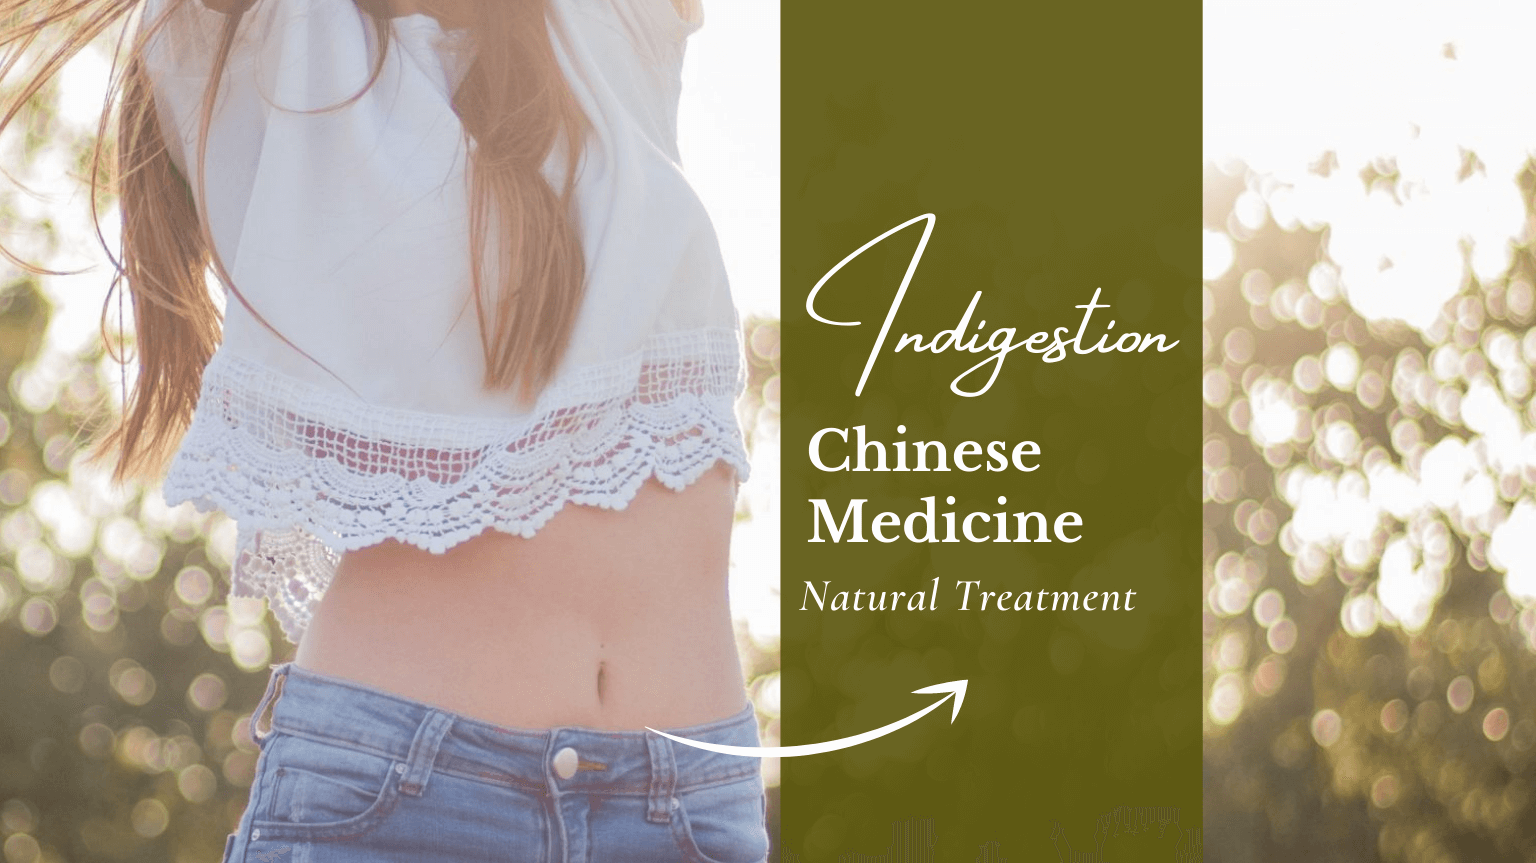 Indigestion Treatment with Natural Chinese Medicine